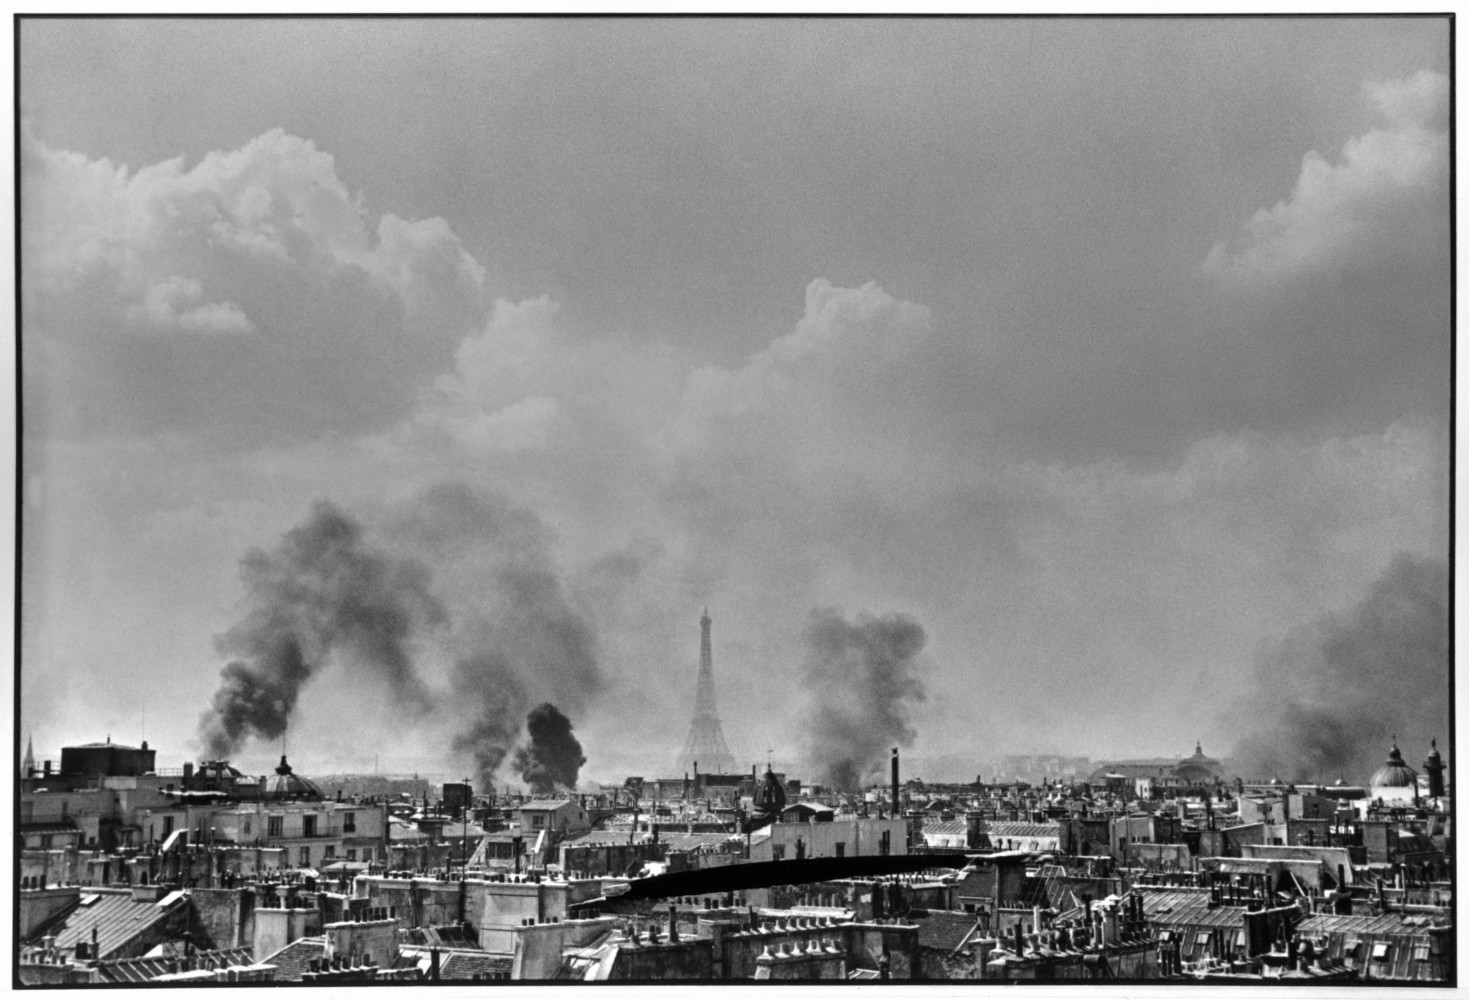 The Liberation of Paris From Nazi Rule • Magnum Photos